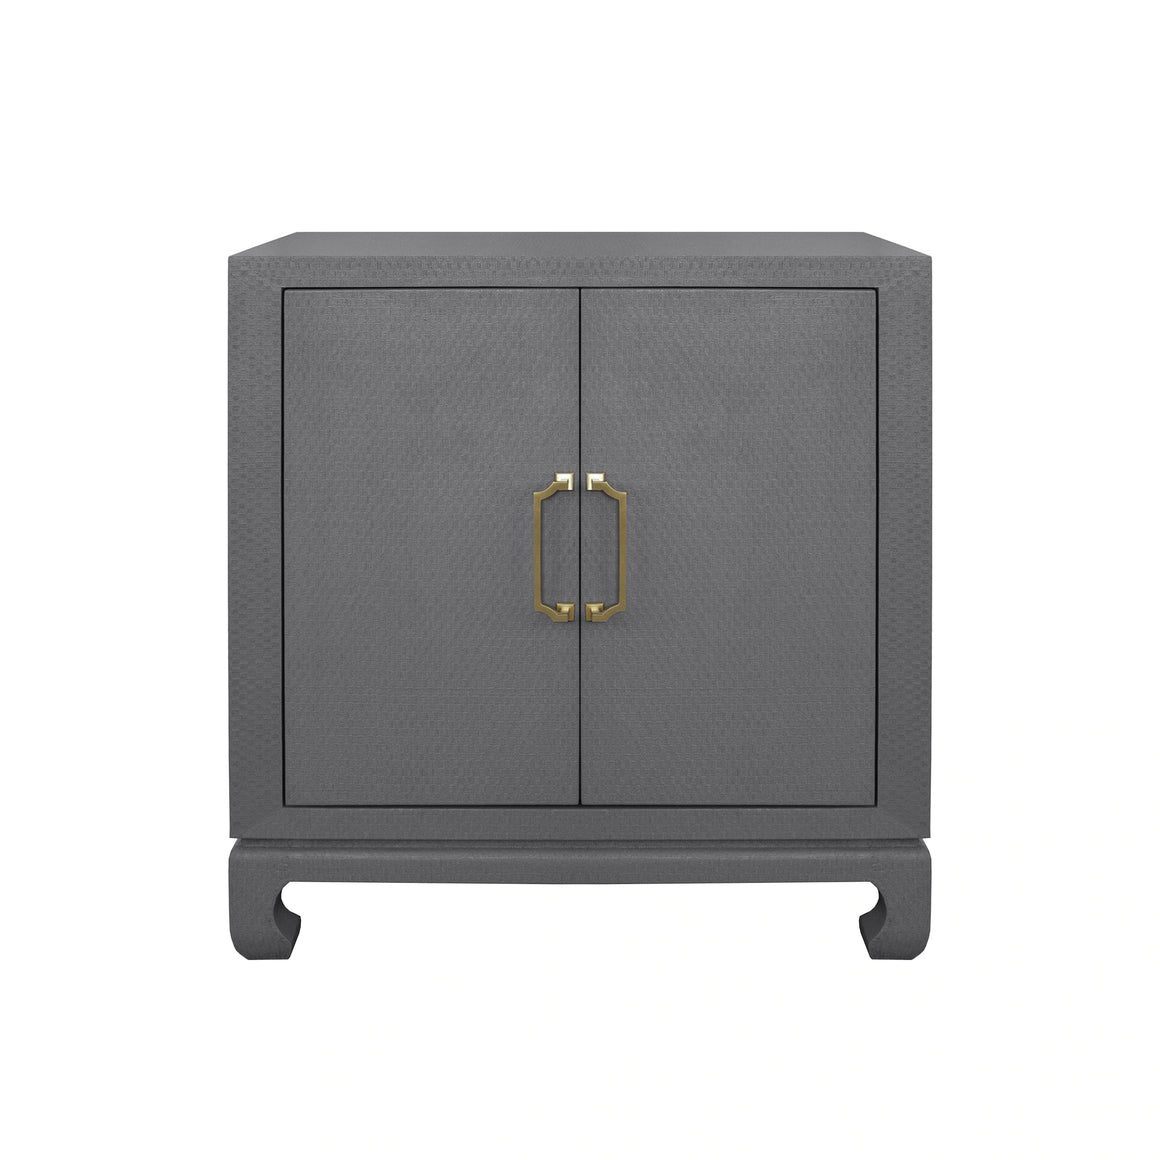 Worlds Away Renwick 2 Door Chest with Brass Hardware - Grey Lacquered Basketweave Grasscloth